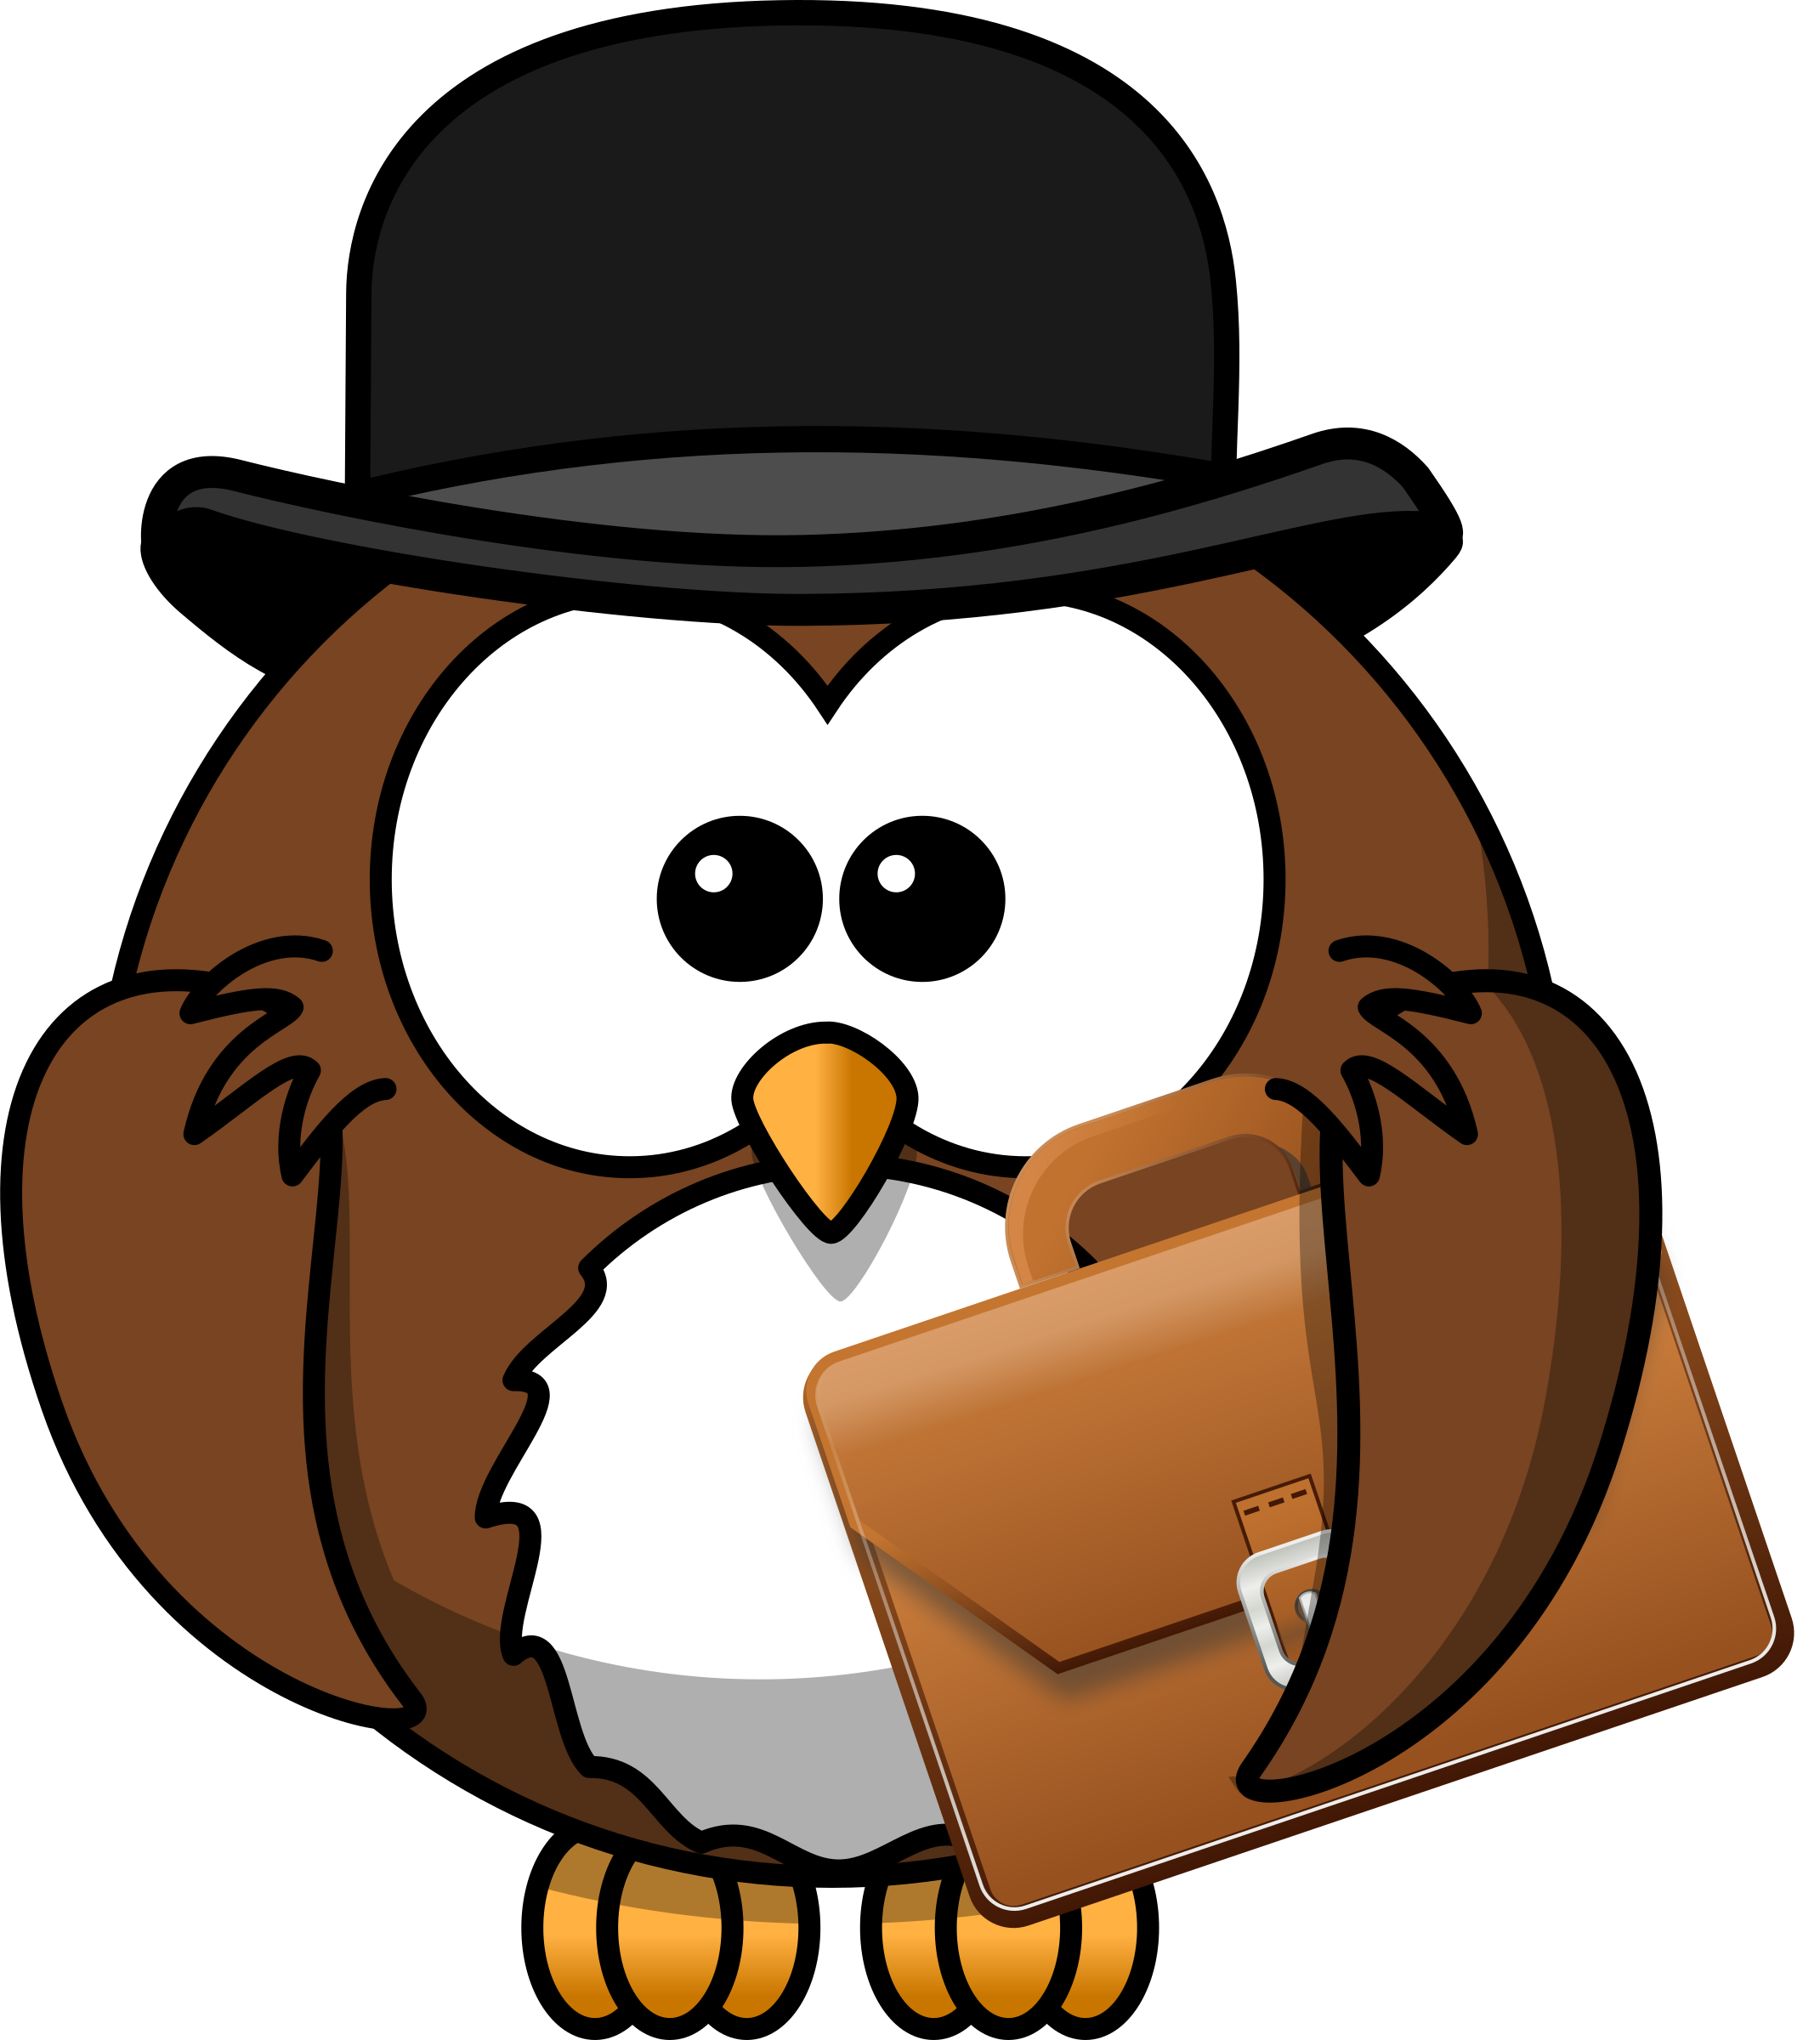 Owl with hat and briefcase by Iyo.